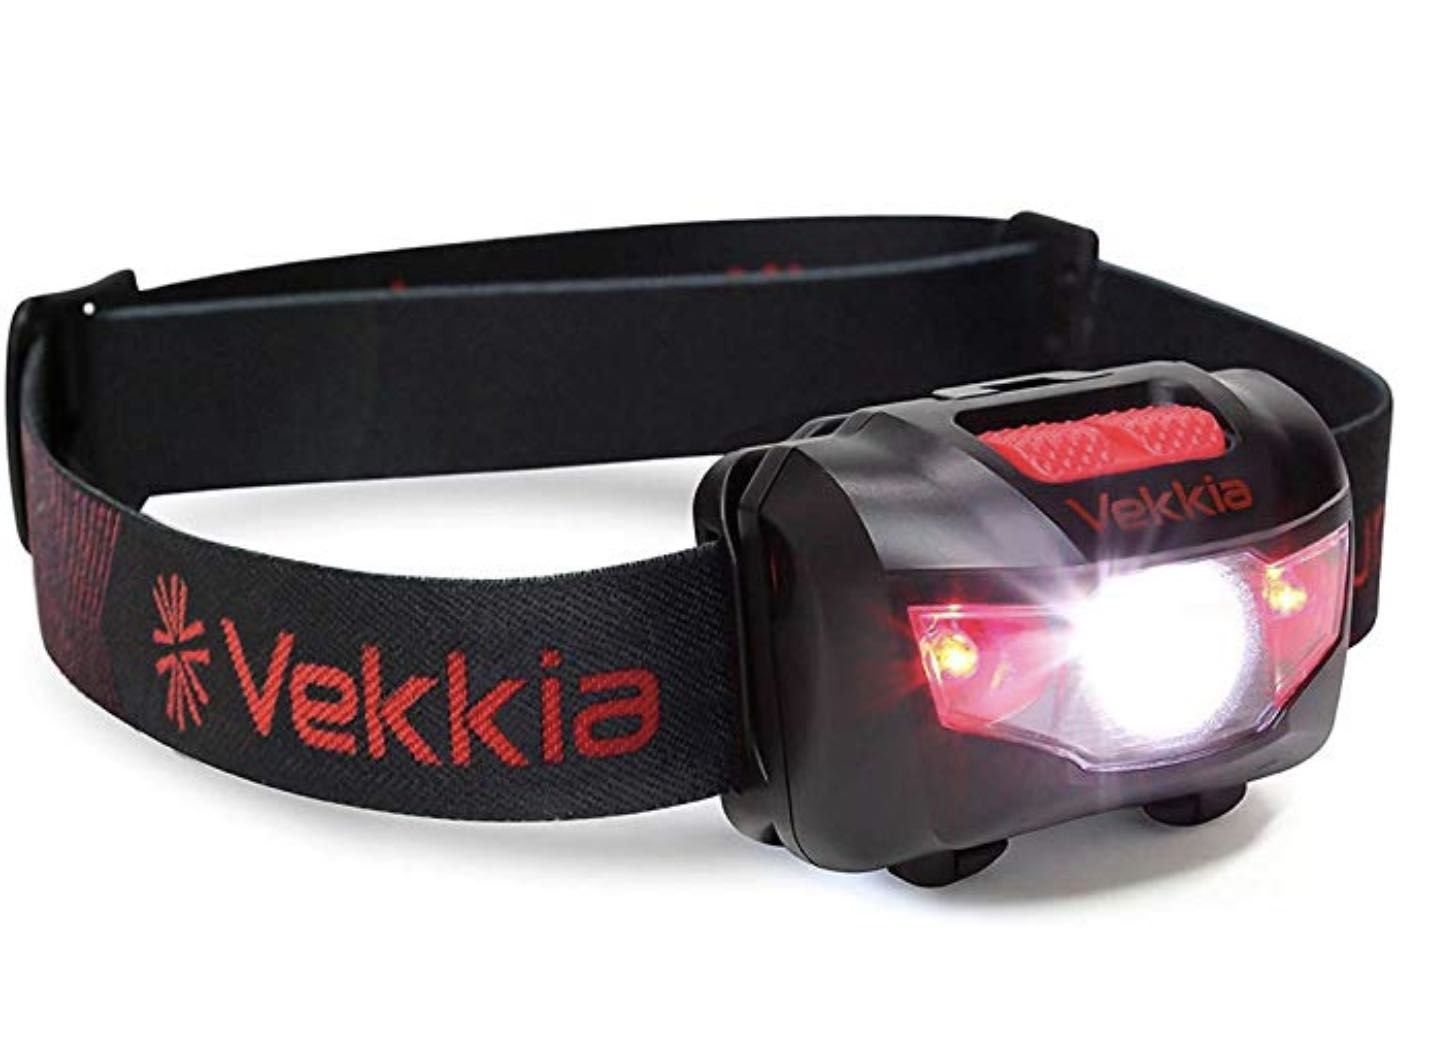 Headlamp - Best Travel Gifts For Men